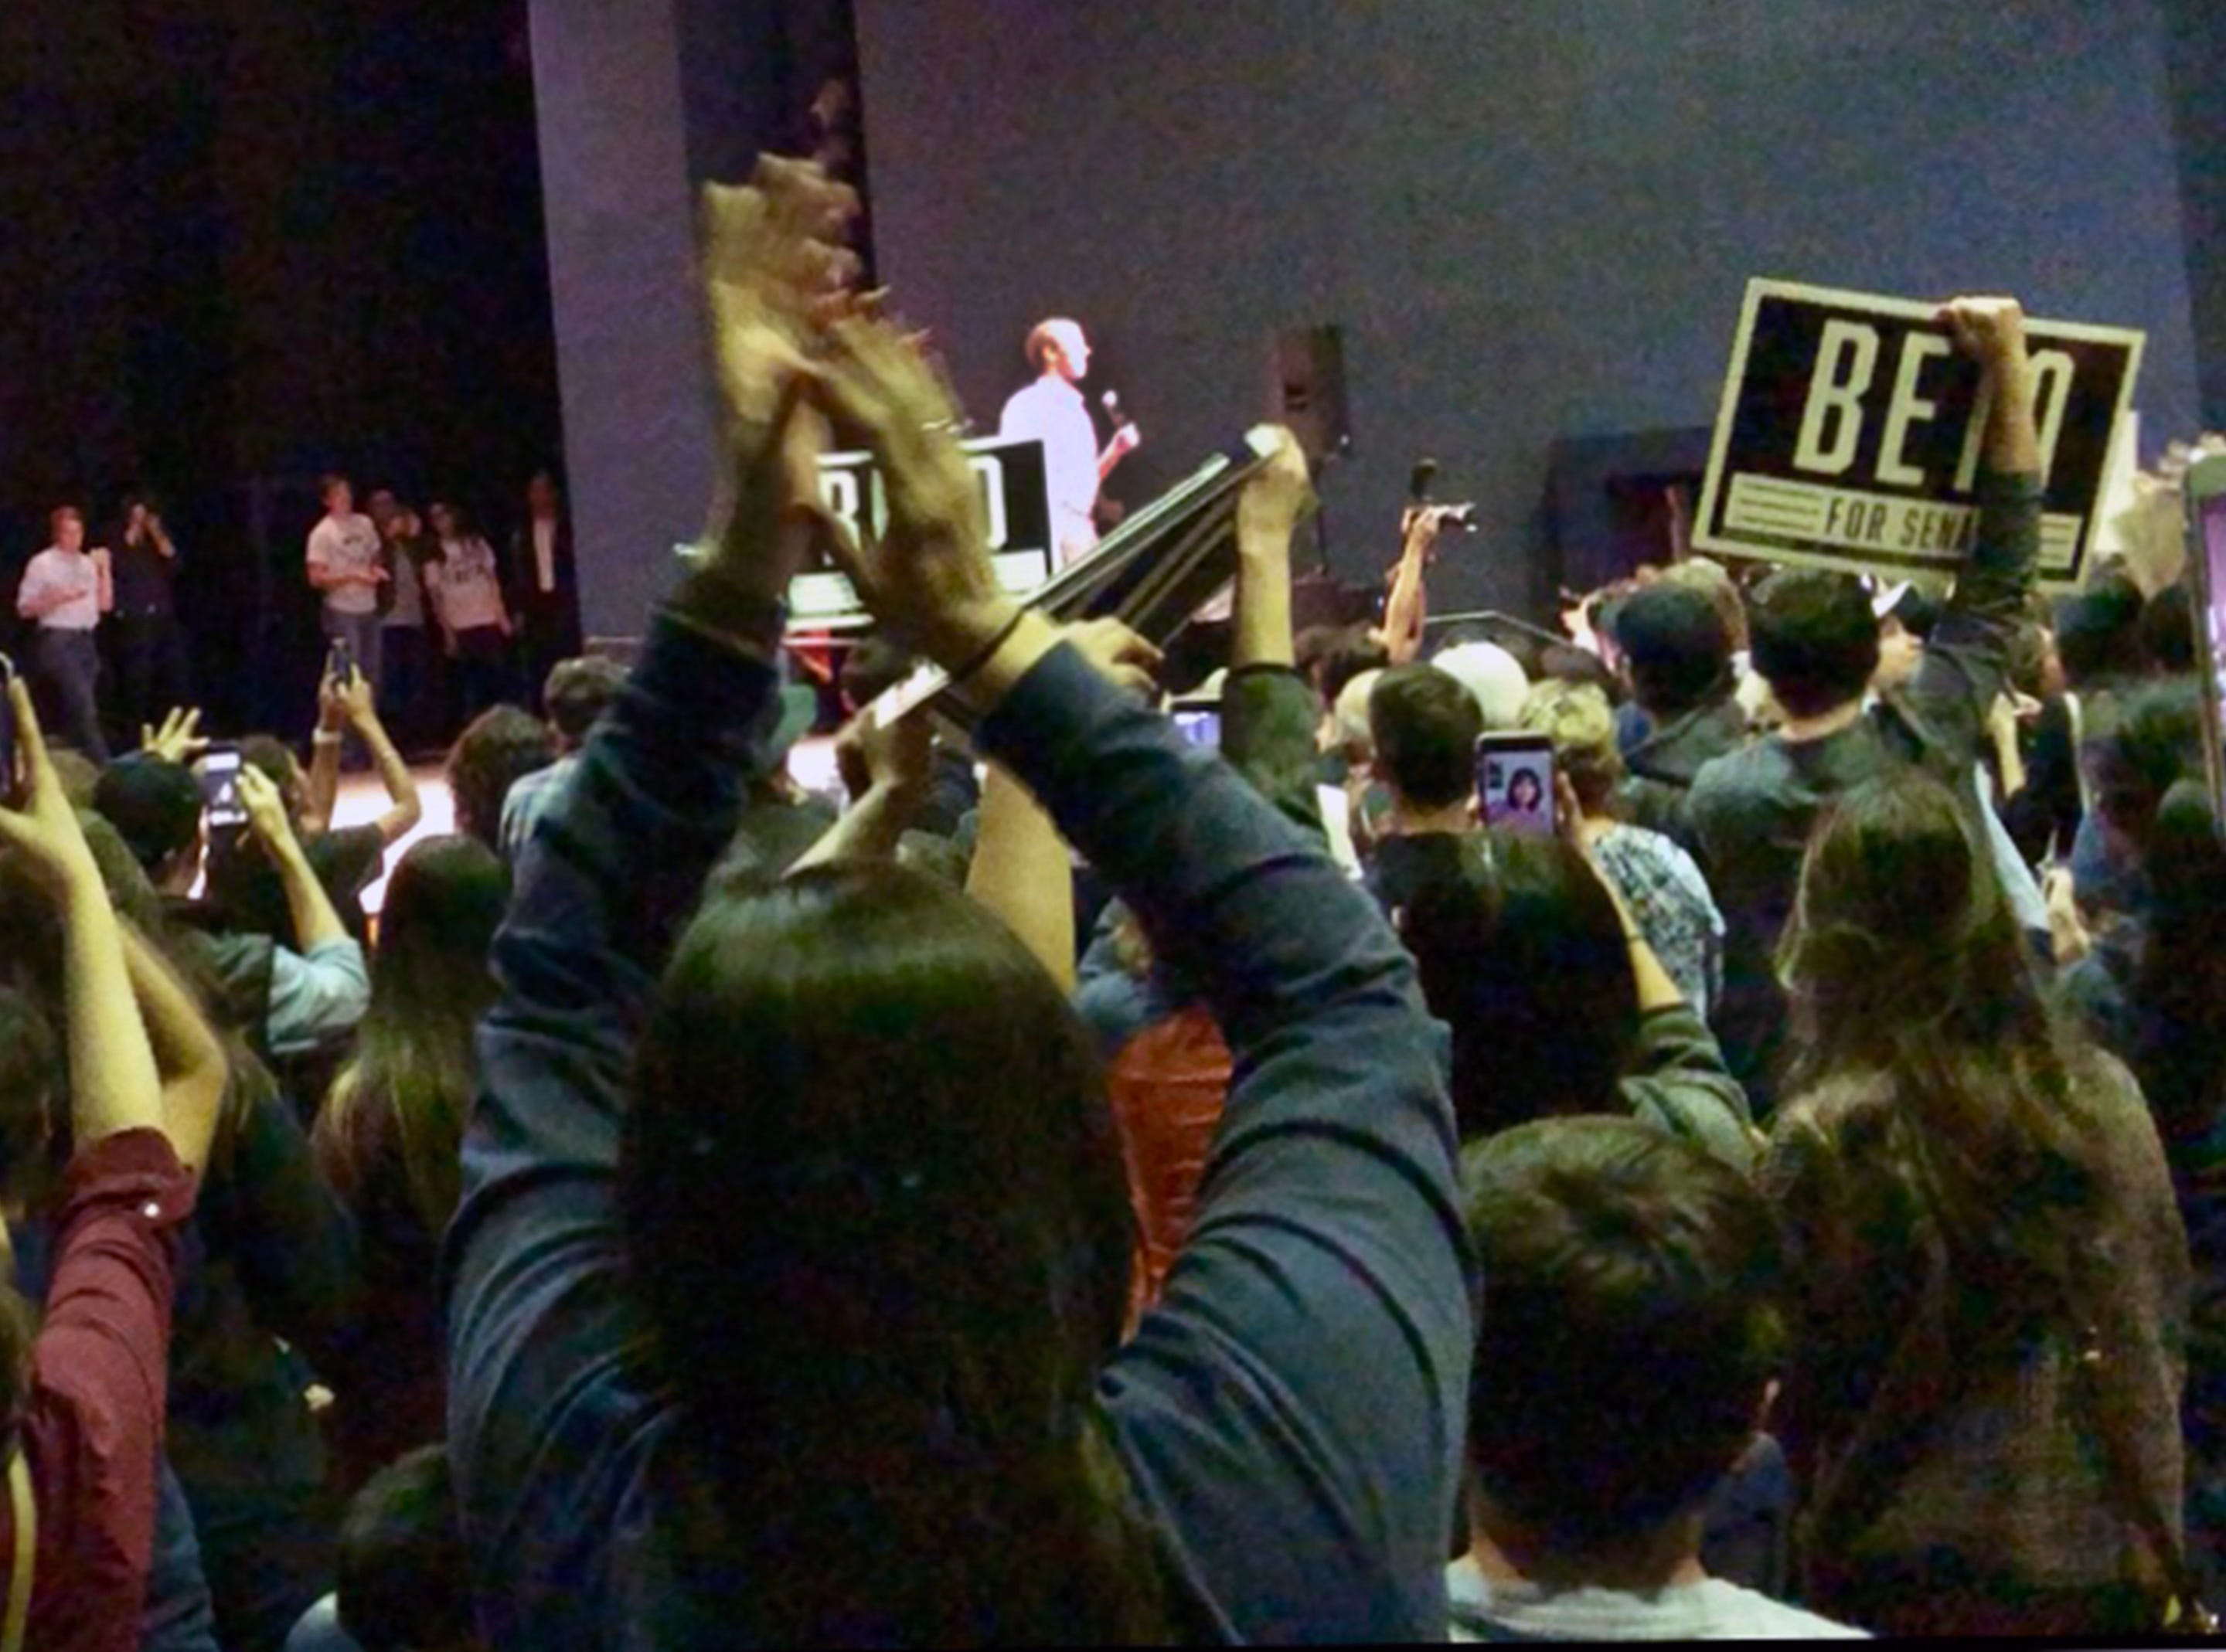 A capacity crowd welcomes Democratic U.S. Senate candidate Beto O'Rourke into Magoffin Auditorium Monday night.